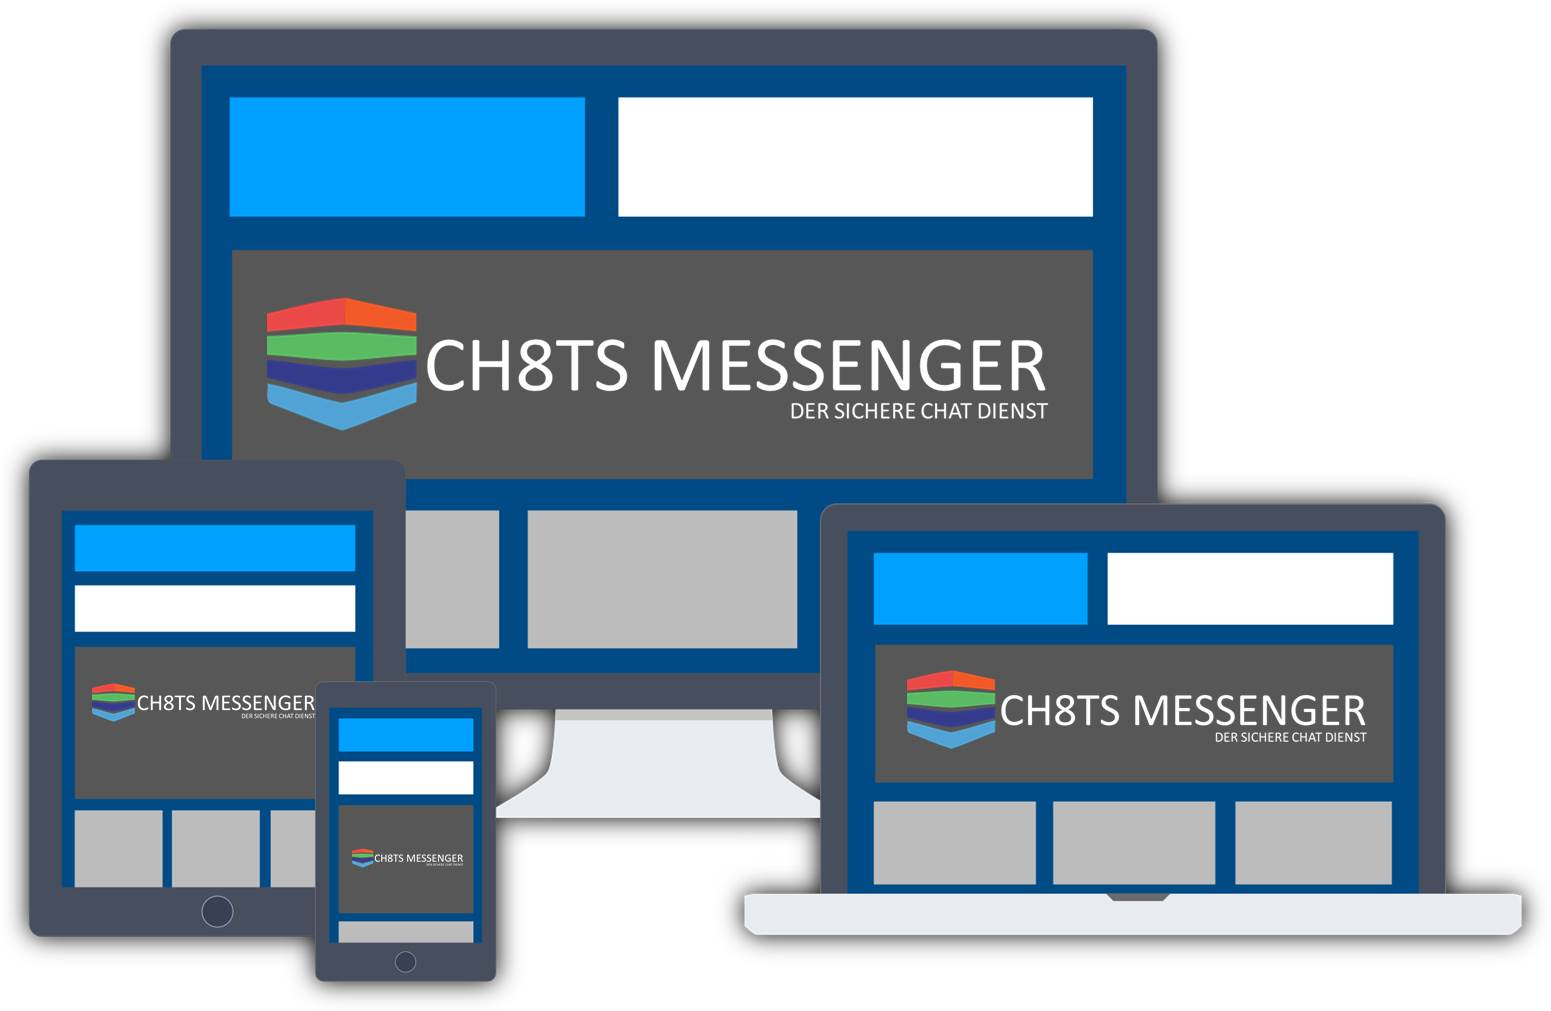 ch8ts_messenger_cross_plattform_multiplattform_xmpp_jabber_server.jpg